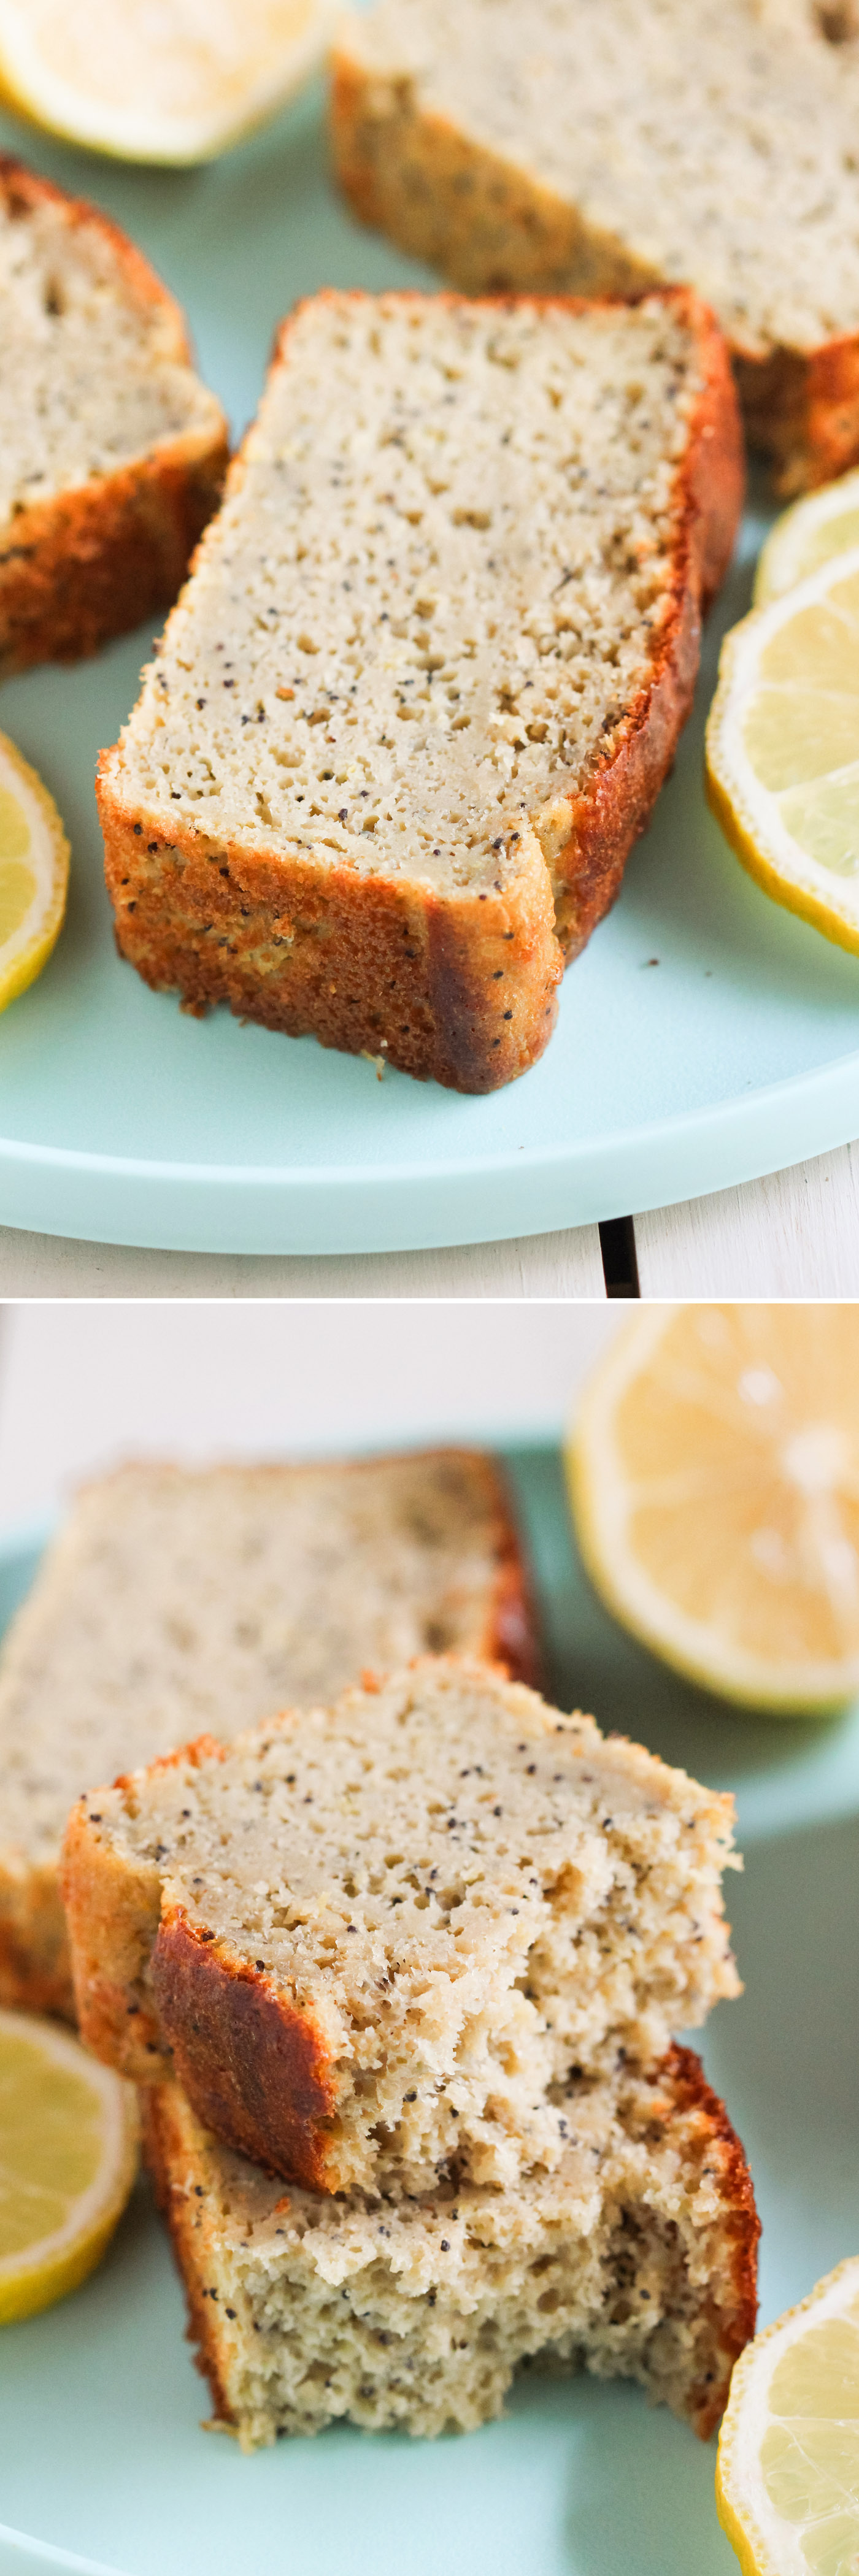 This Healthy Lemon Poppyseed Cake doesn't taste healthy in the slightest! It's sweet, it's moist, it's springy and fluffy -- everything a cake should be. The only difference is that this recipe is sugar free, low fat, high protein, and 100% whole grain! Healthy Dessert Recipes with sugar free, low calorie, low fat, low carb, high protein, gluten free, dairy free, vegan, and raw options at the Desserts With Benefits Blog (www.DessertsWithBenefits.com)